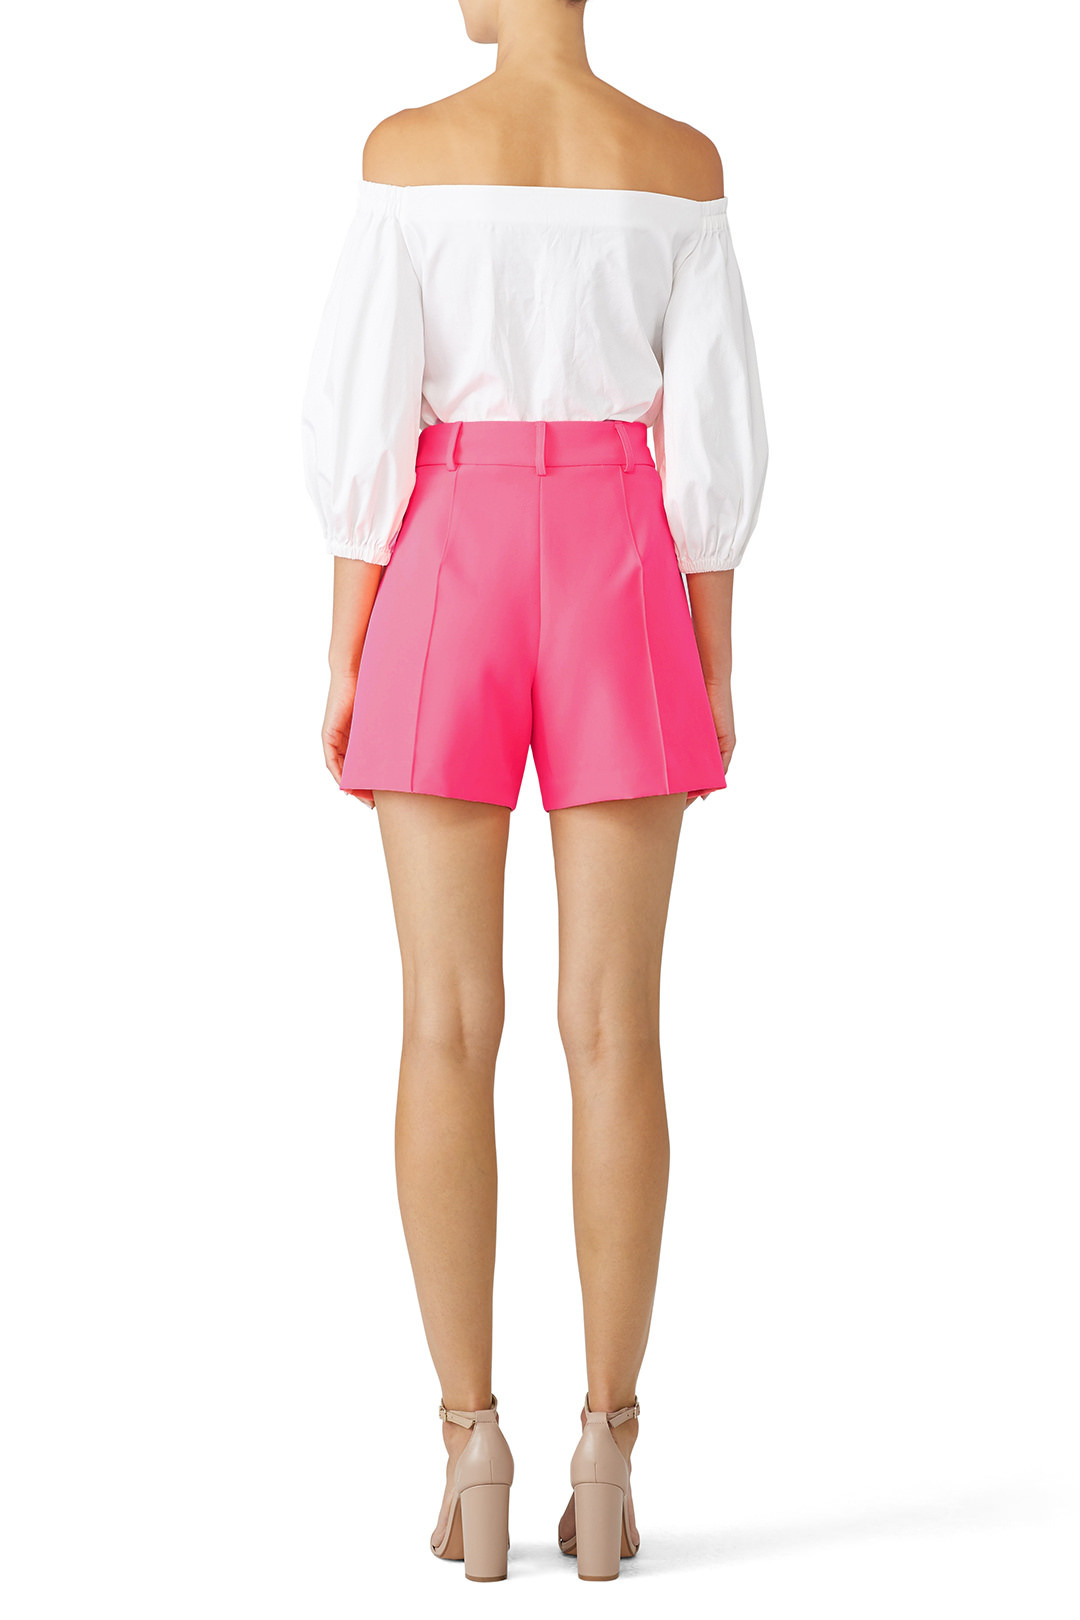 Milly Pintuck Pink Short // $245   I mean, this is so me I can't even explain. If you don't understand you probably should leave my site.